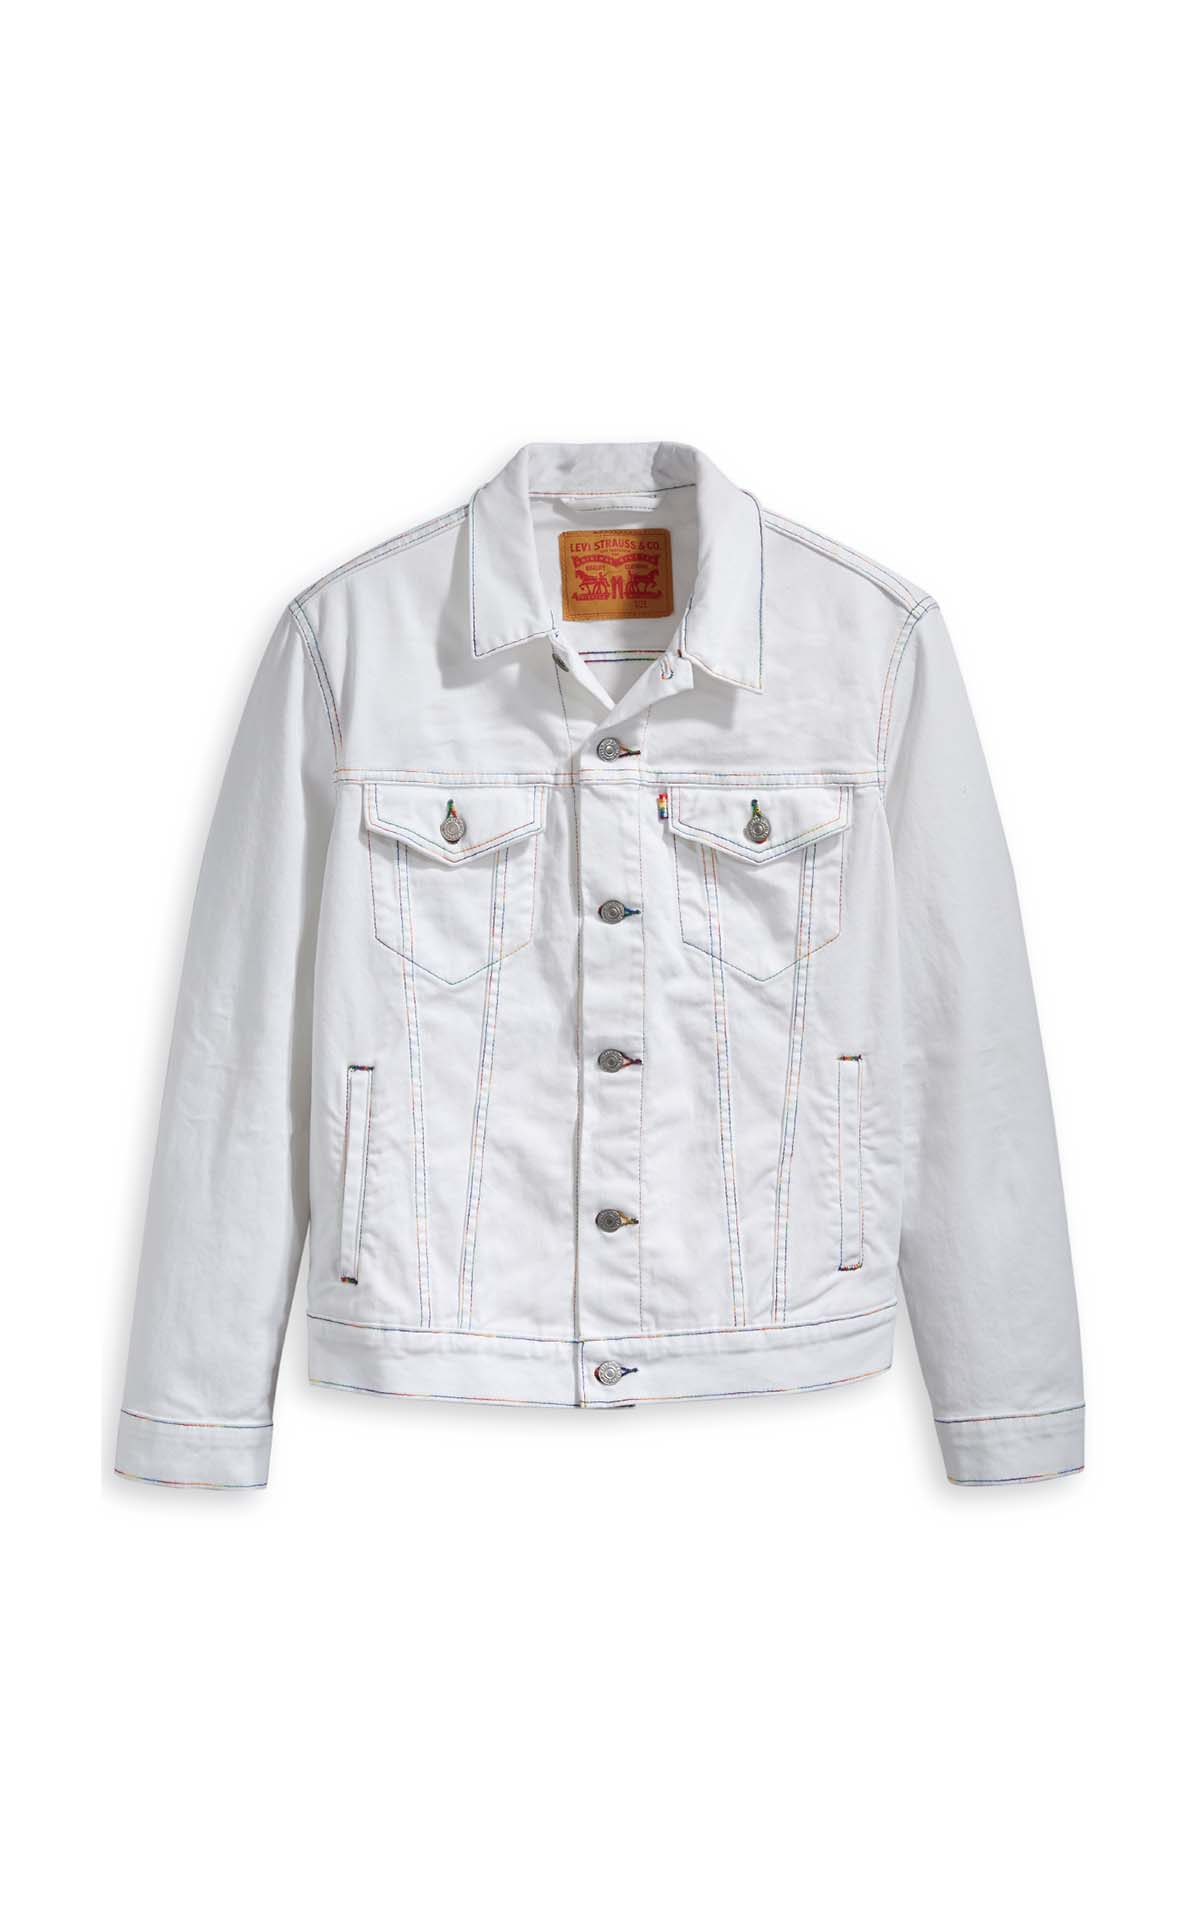 Levi's The trucker jacket in white at The Bicester Village Shopping Collection